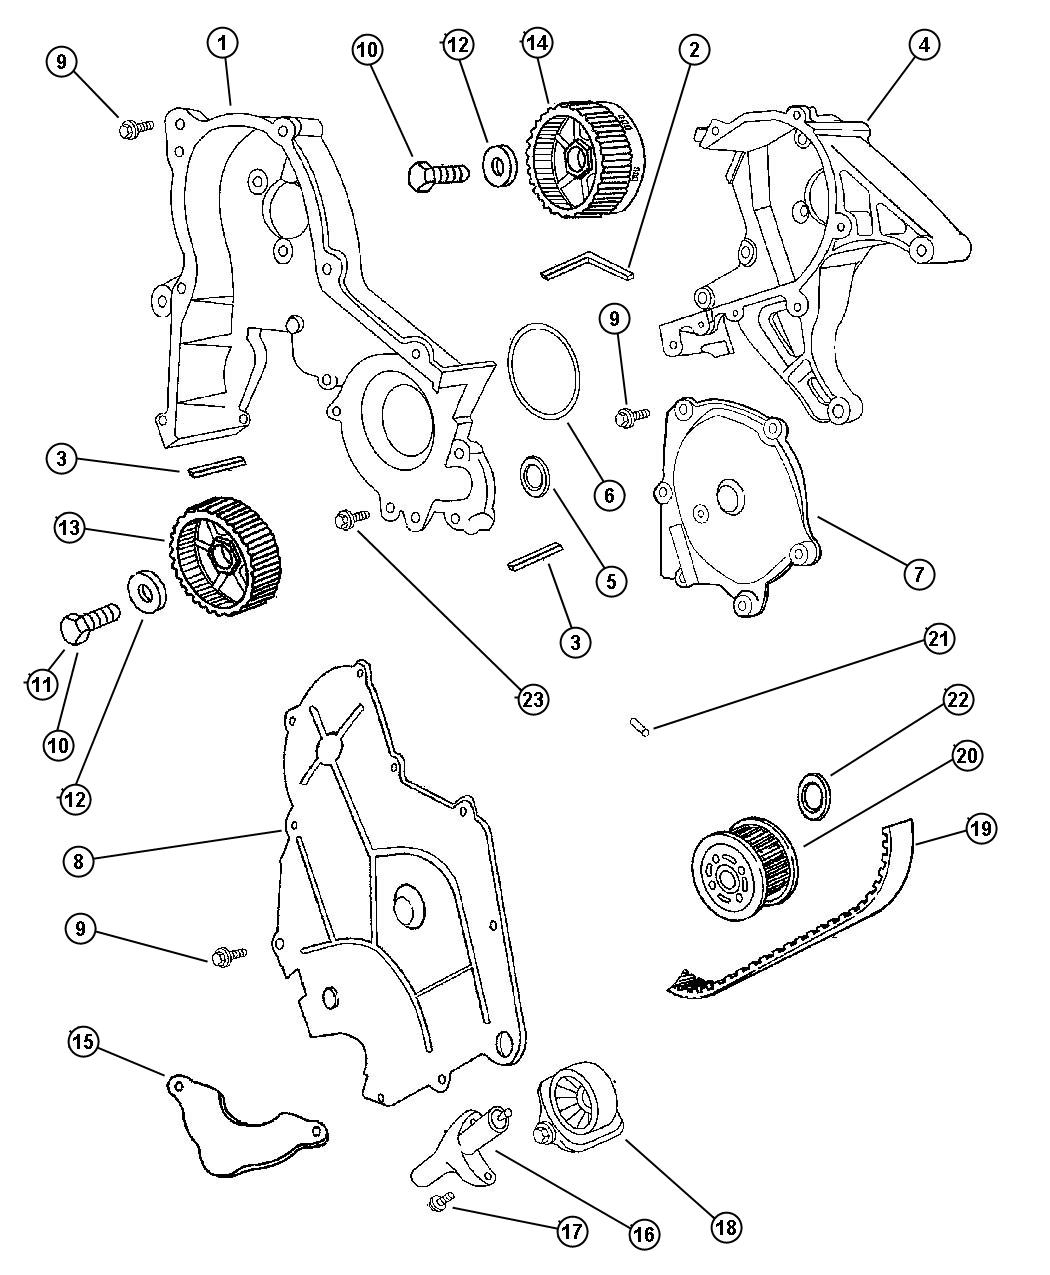 service manual  2000 chrysler lhs timing belt change